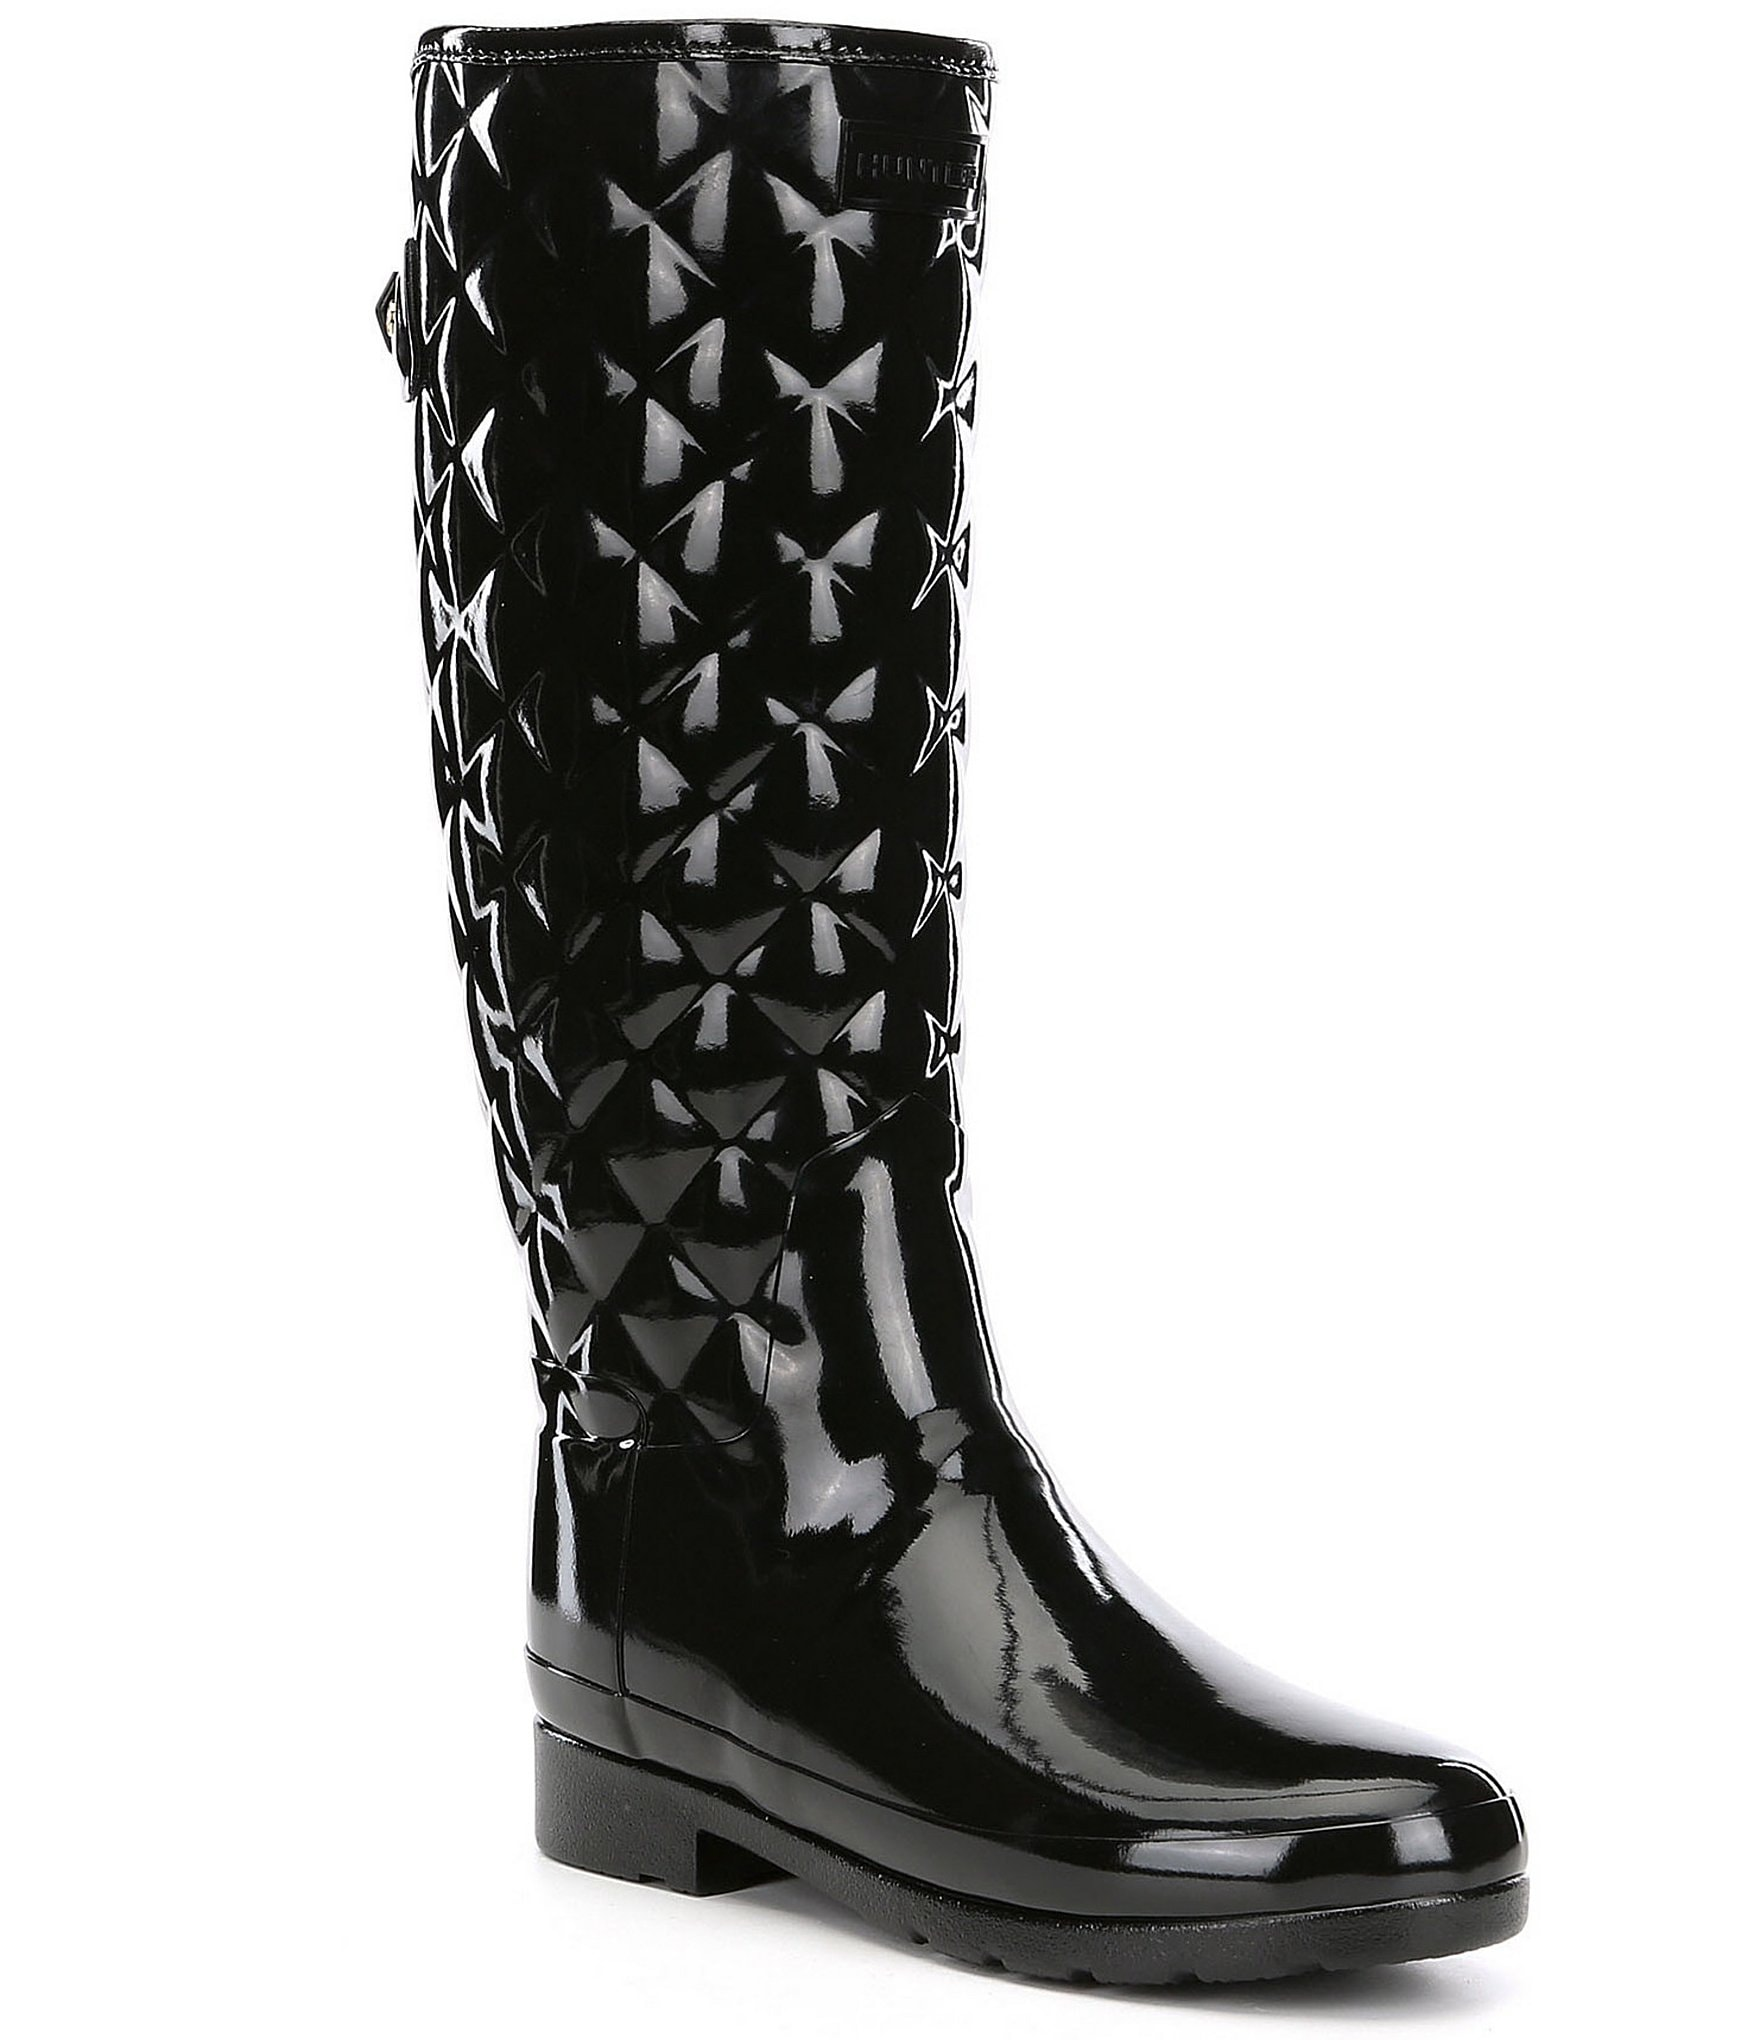 99d917f9c9a6 Hunter Tall Refined Quilted Gloss Rain Boots